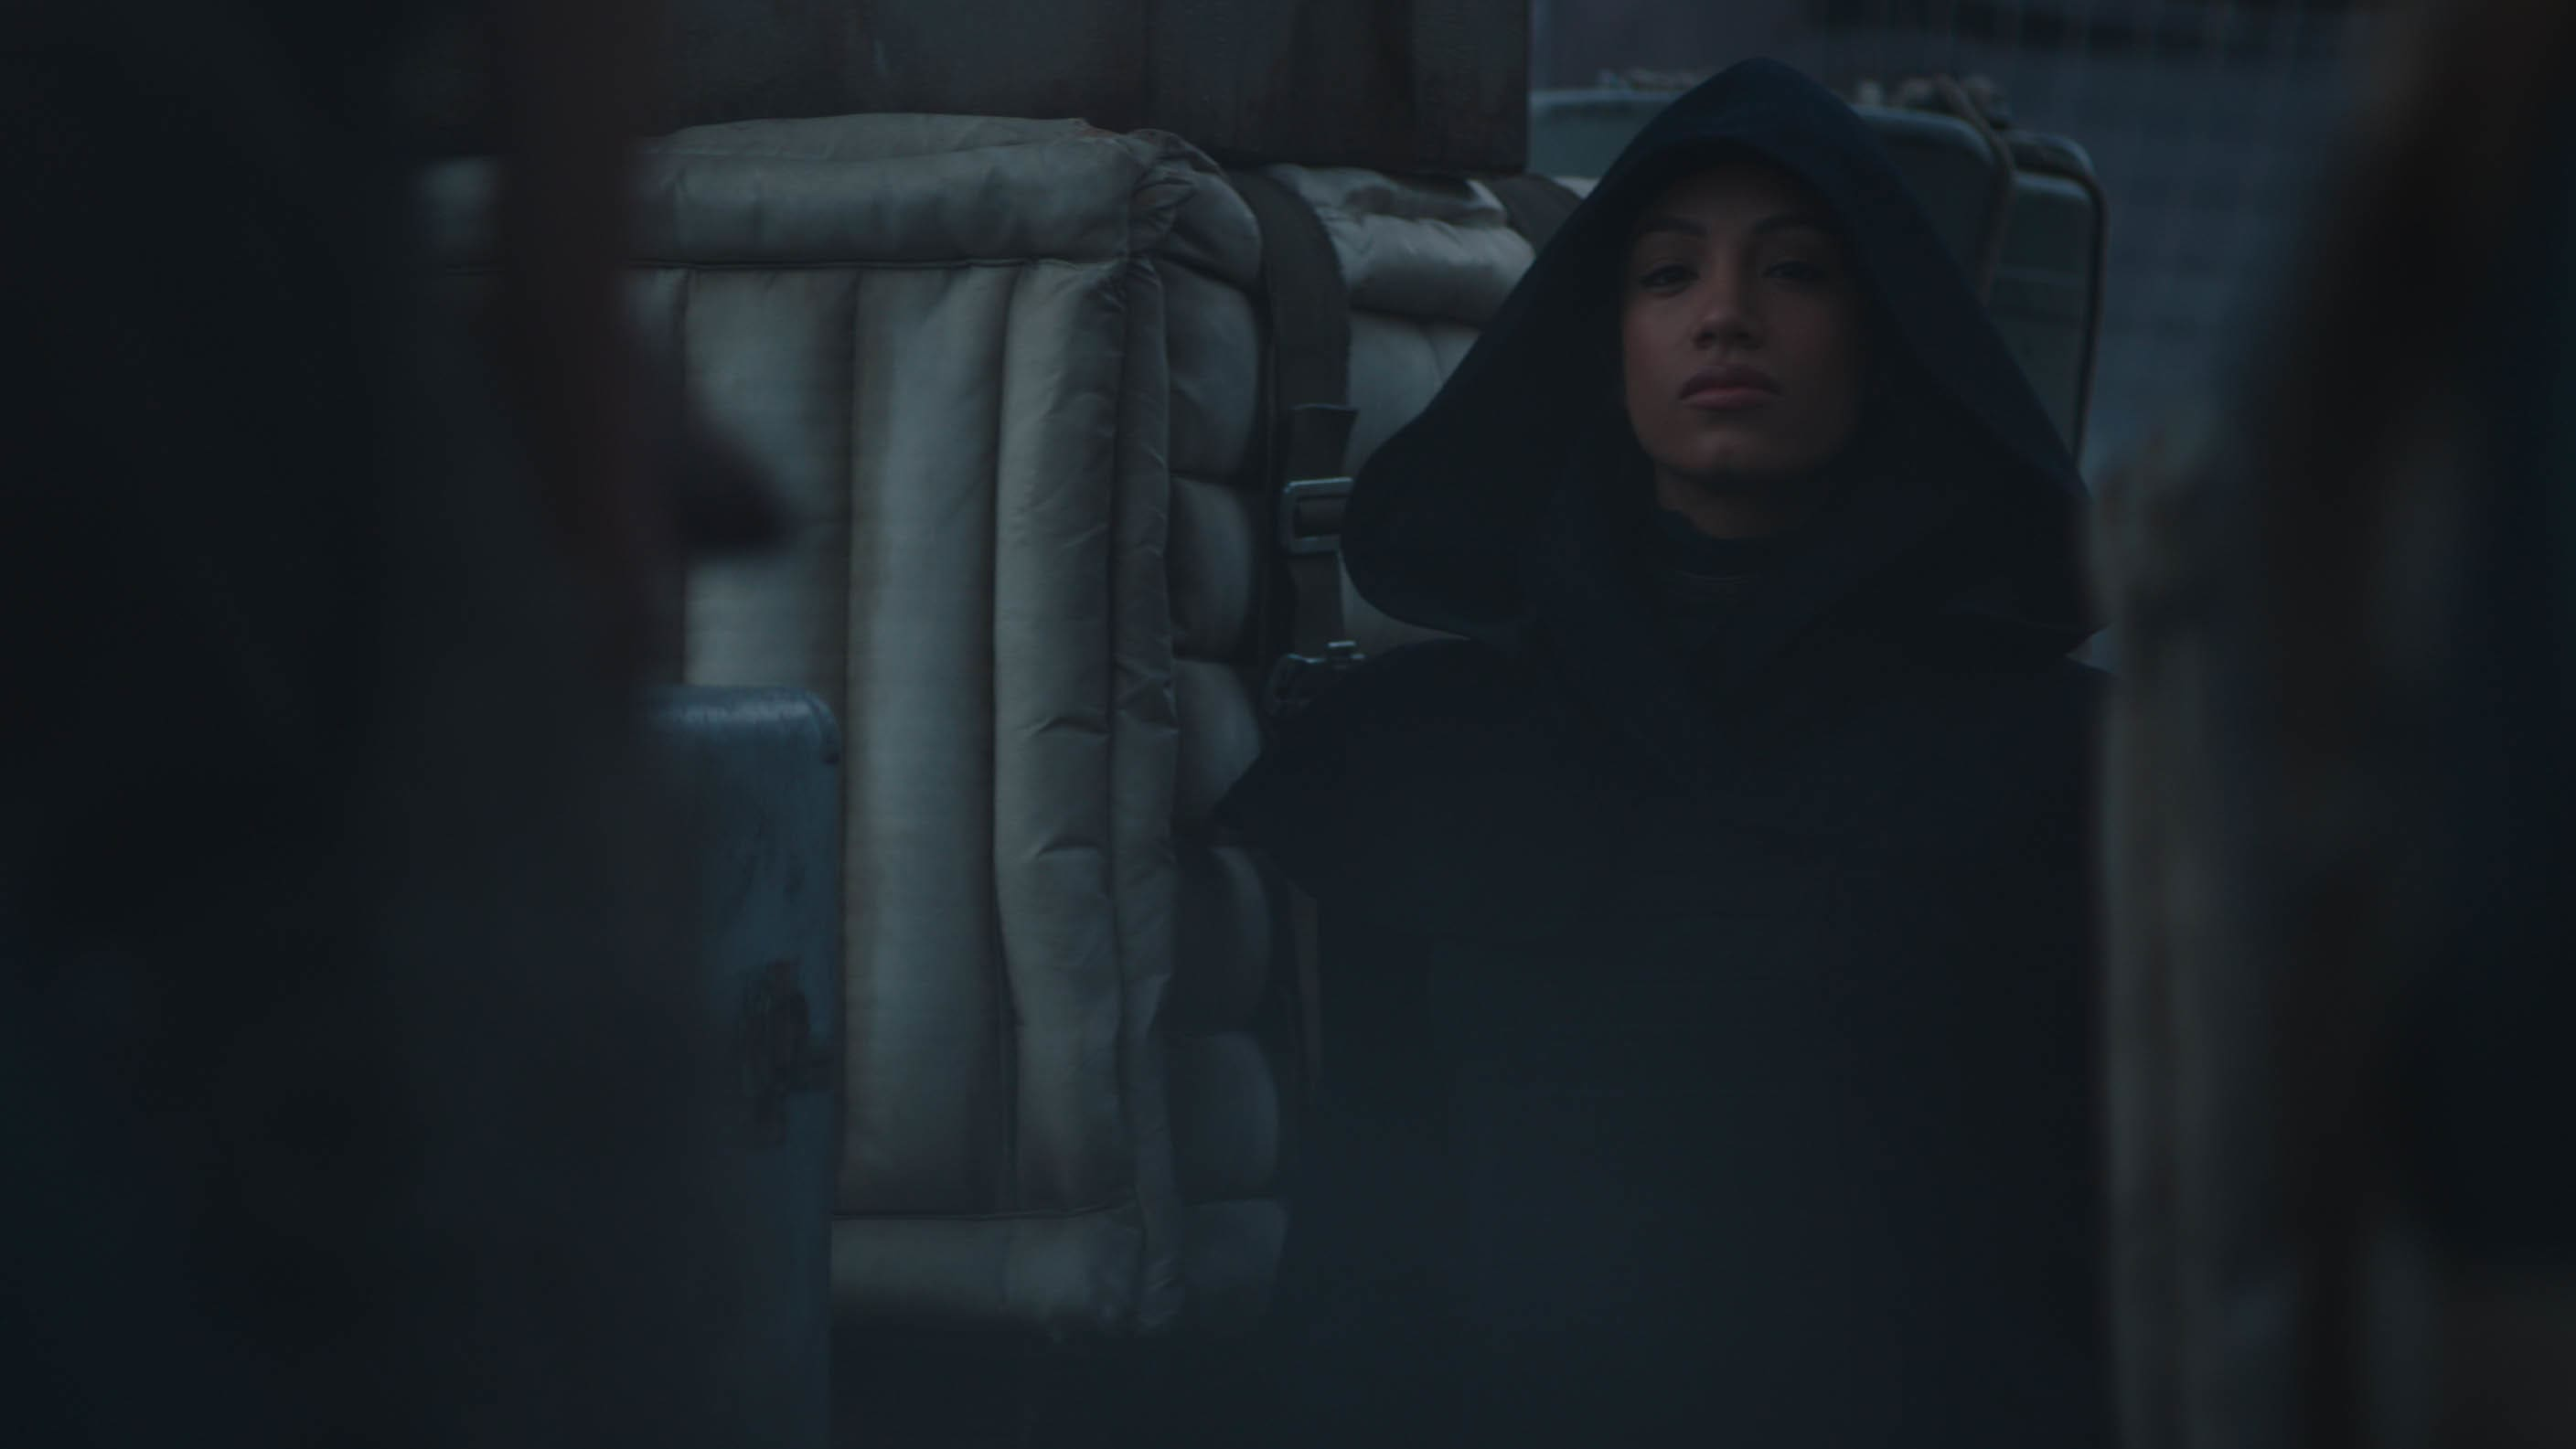 Sasha Banks in THE MANDALORIAN, season two. © 2020 Lucasfilm Ltd. & TM. All Rights Reserved.